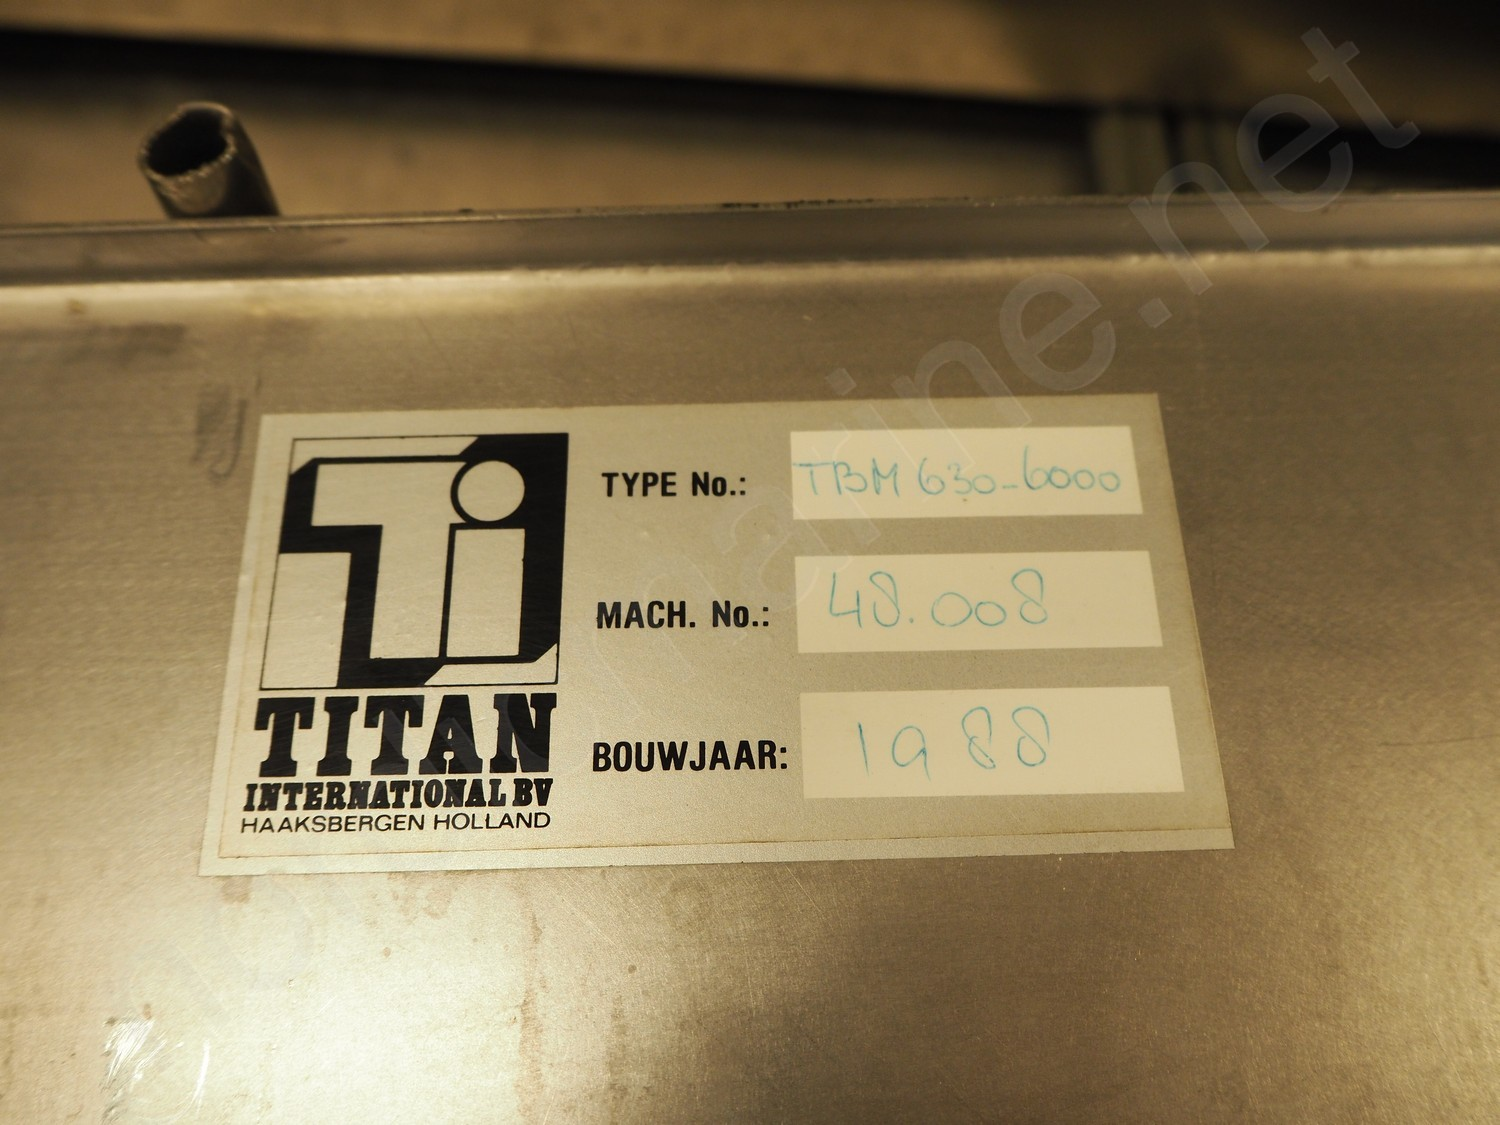 Stork Titan TBM 630 \ 6000 Frying line